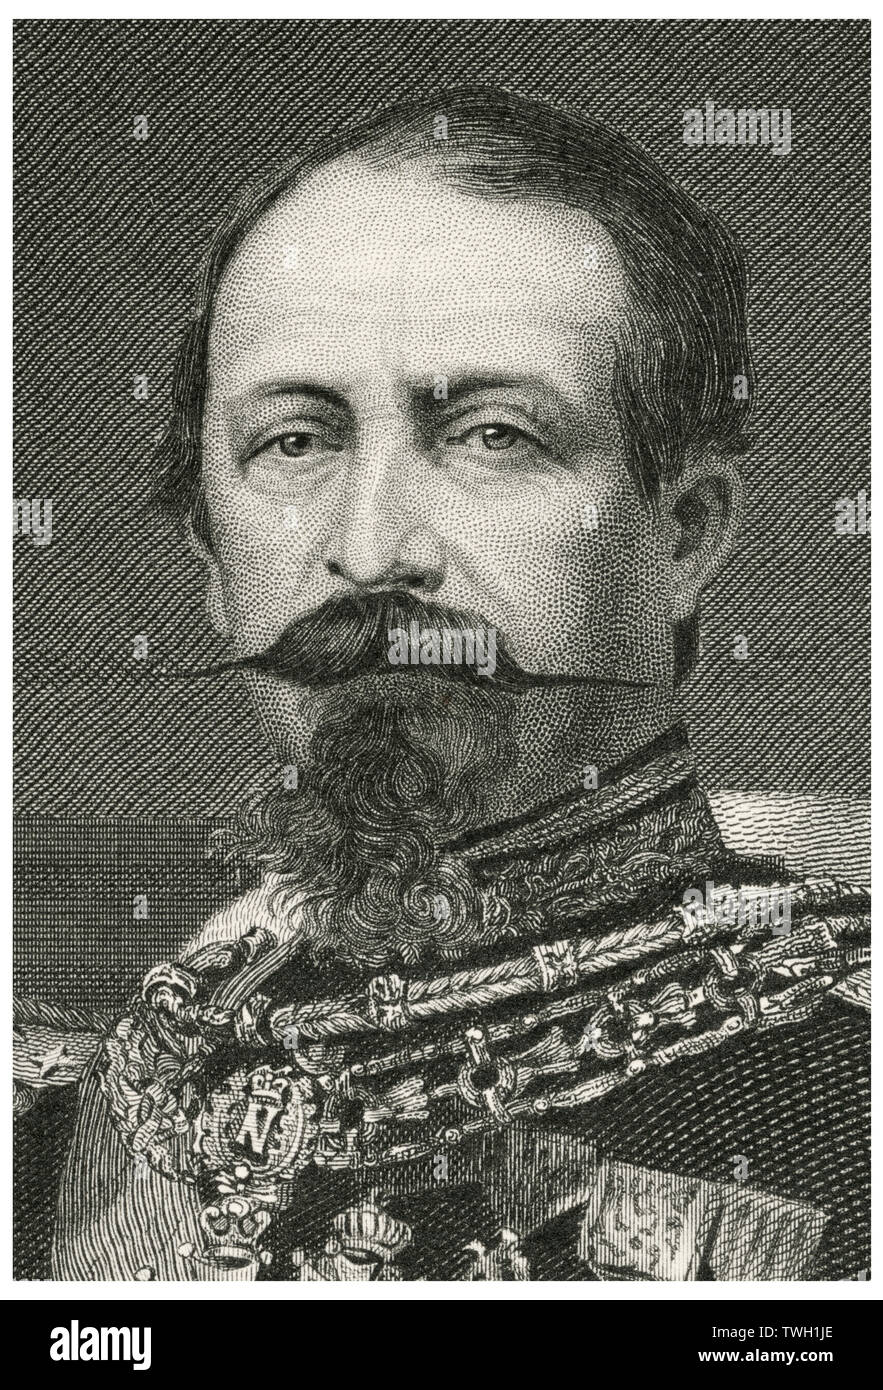 Napoleon III (1803-1873), First Elected President of France 1848-52, Emperor of the French 1852-1870, Head and Shoulders Portrait, Steel Engraving, Portrait Gallery of Eminent Men and Women of Europe and America by Evert A. Duyckinck, Published by Henry J. Johnson, Johnson, Wilson & Company, New York, 1873 - Stock Image